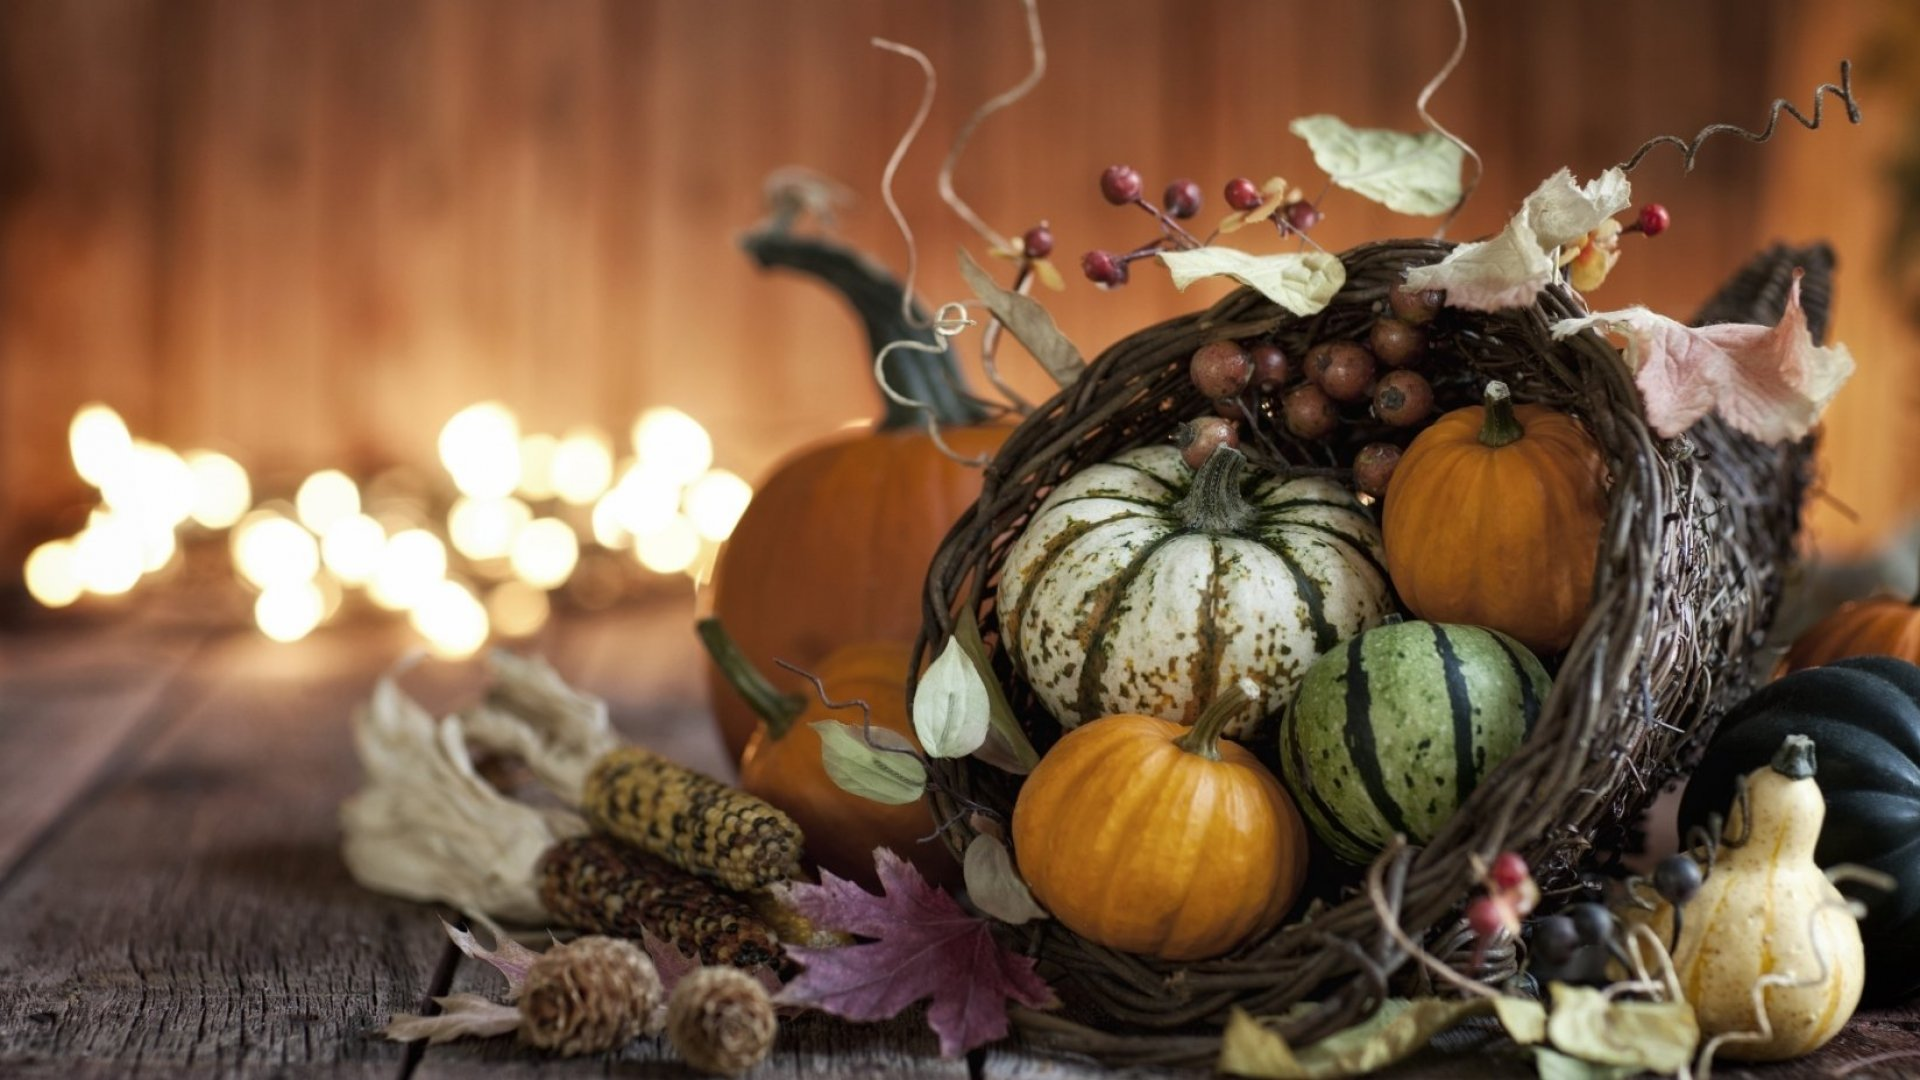 Giving Thanks Can Make You Happier, According to Years of Research